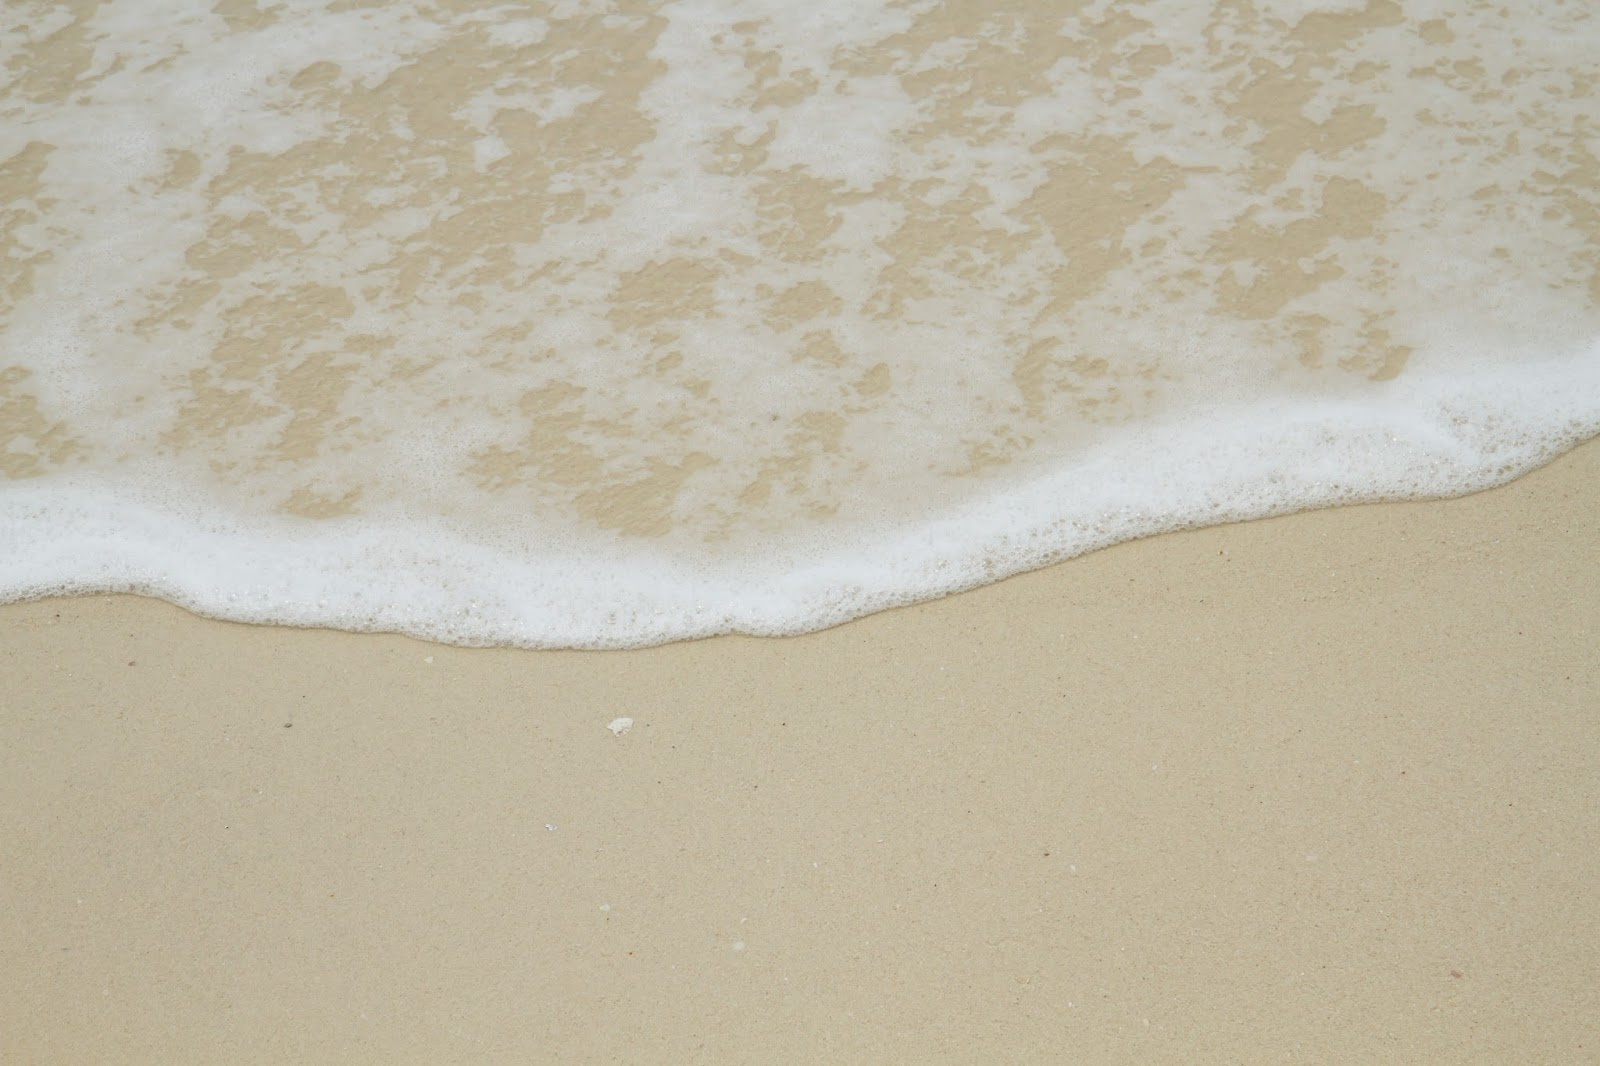 white sand on belitung island